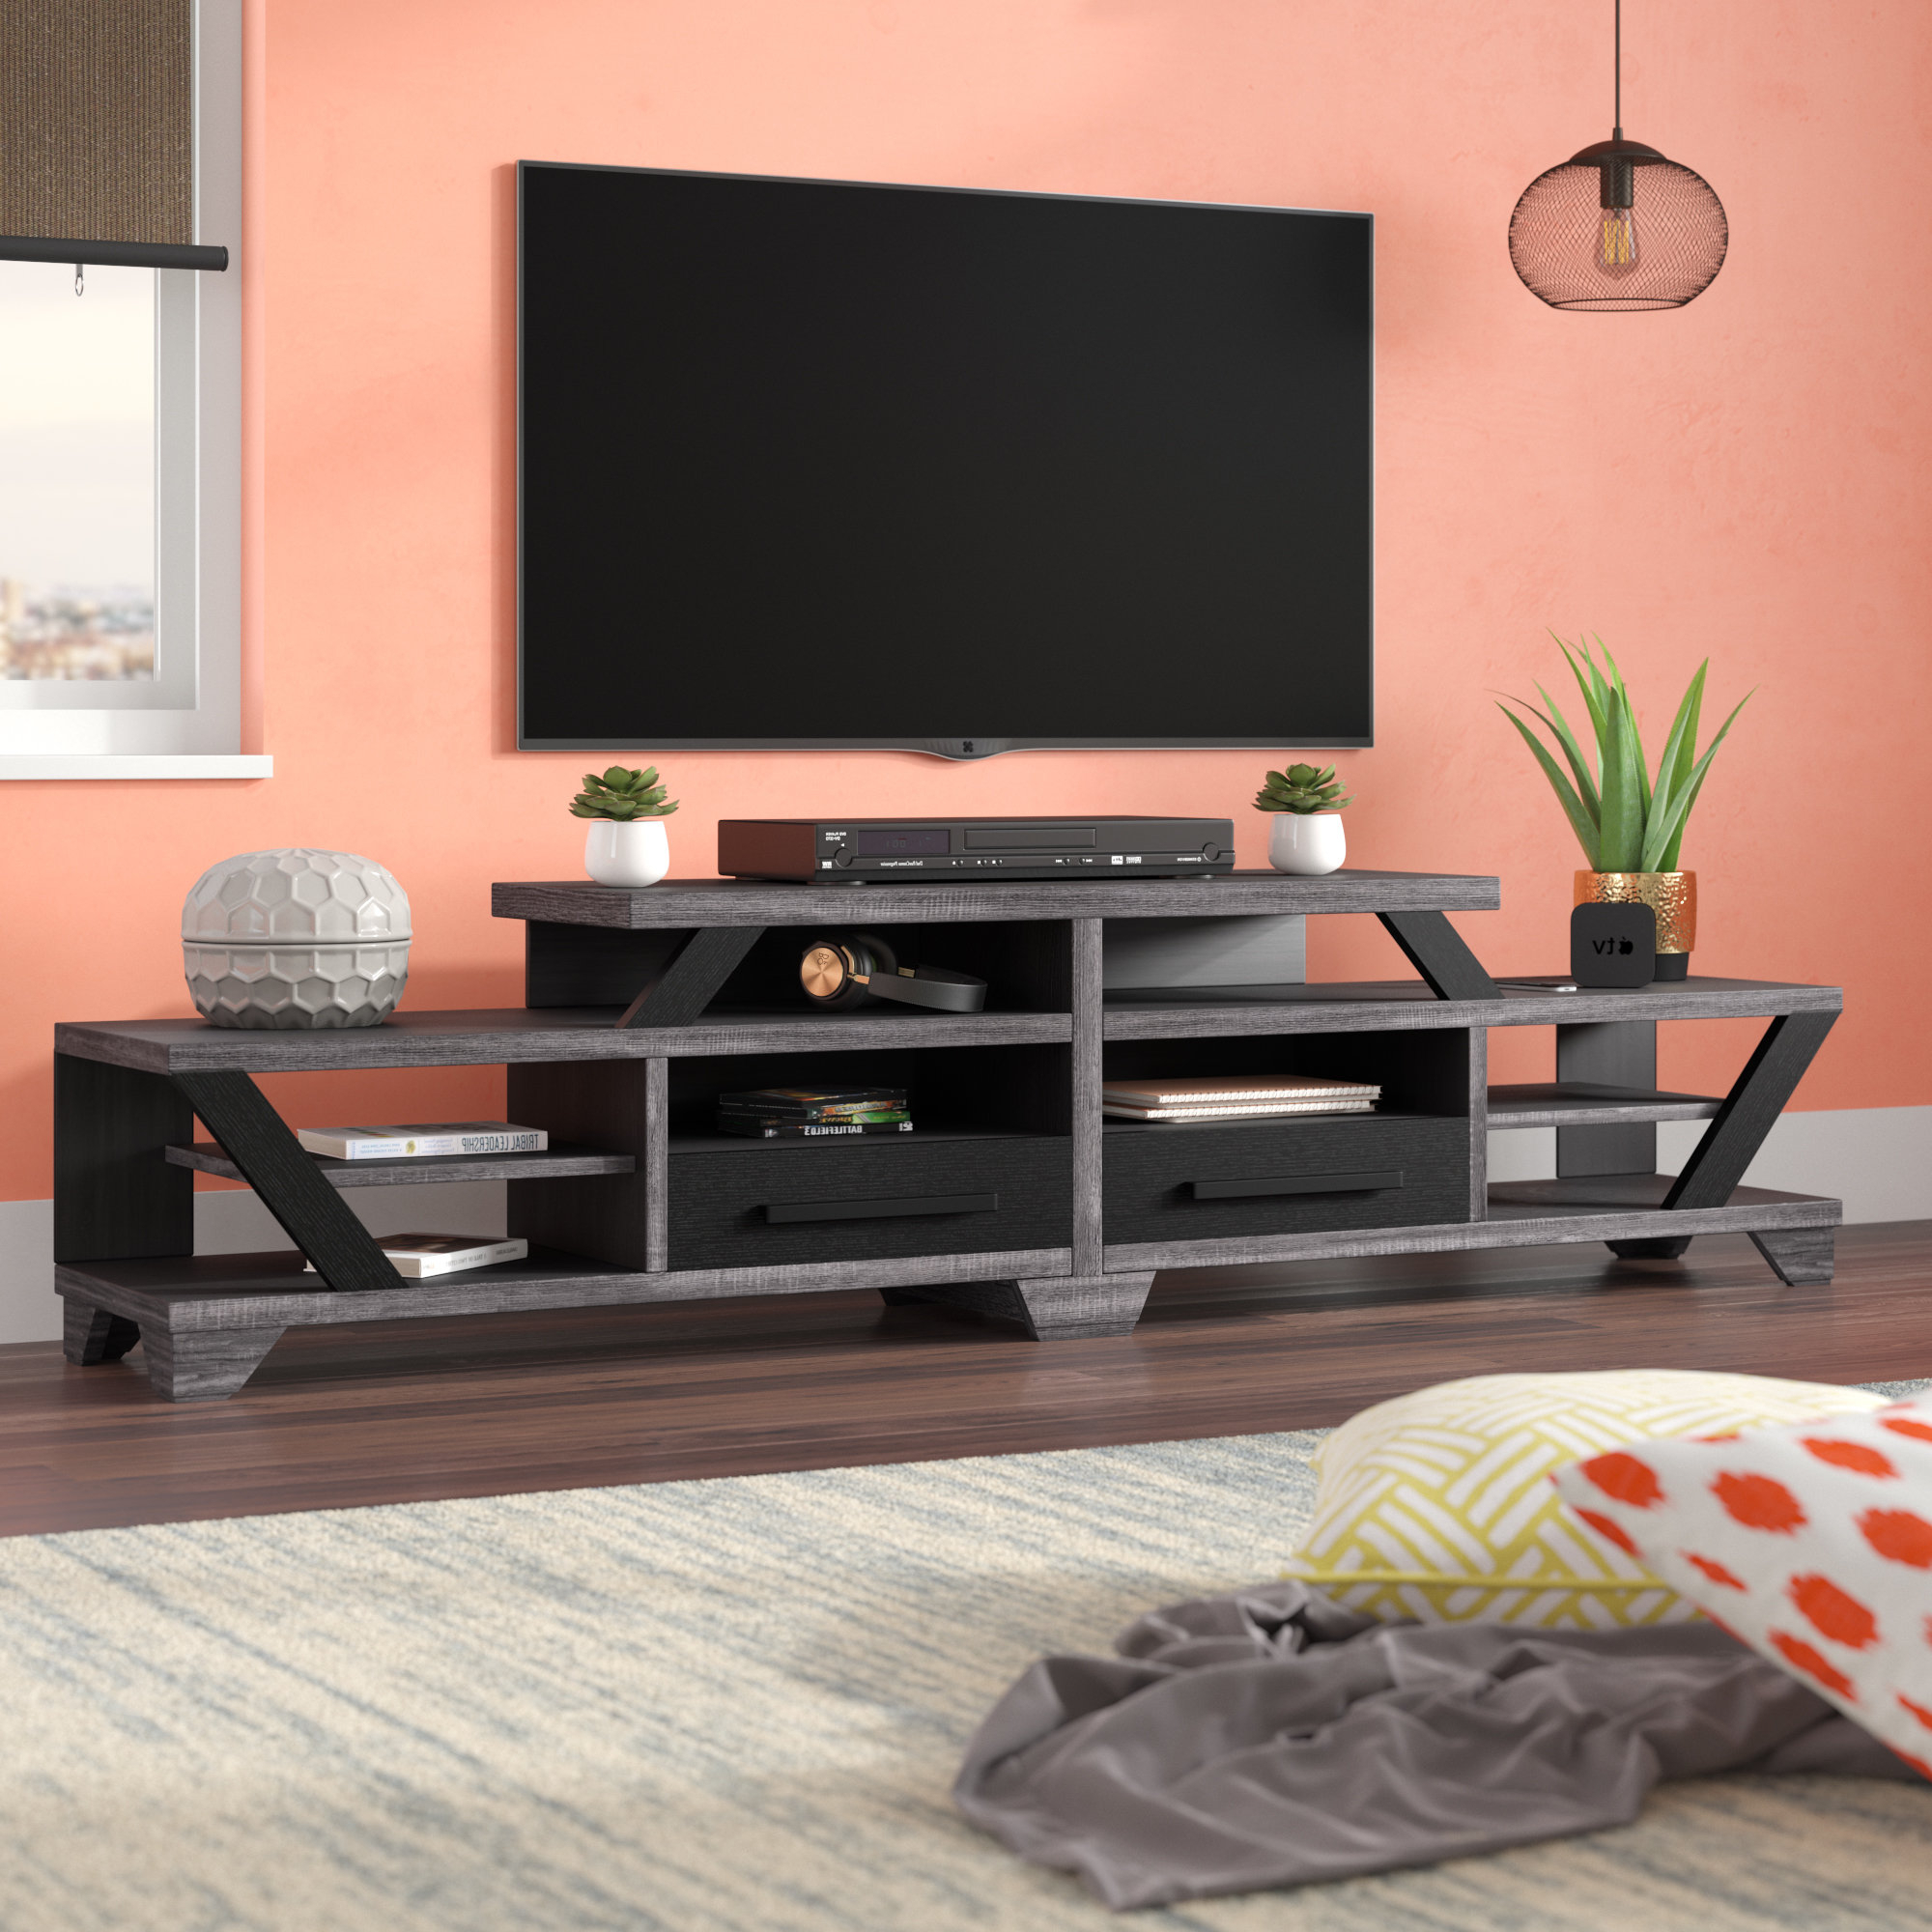 "Brosnan Contemporary Tv Stand For Tvs Up To 80"" With Regard To Well Known Contemporary Tv Stands (View 4 of 20)"